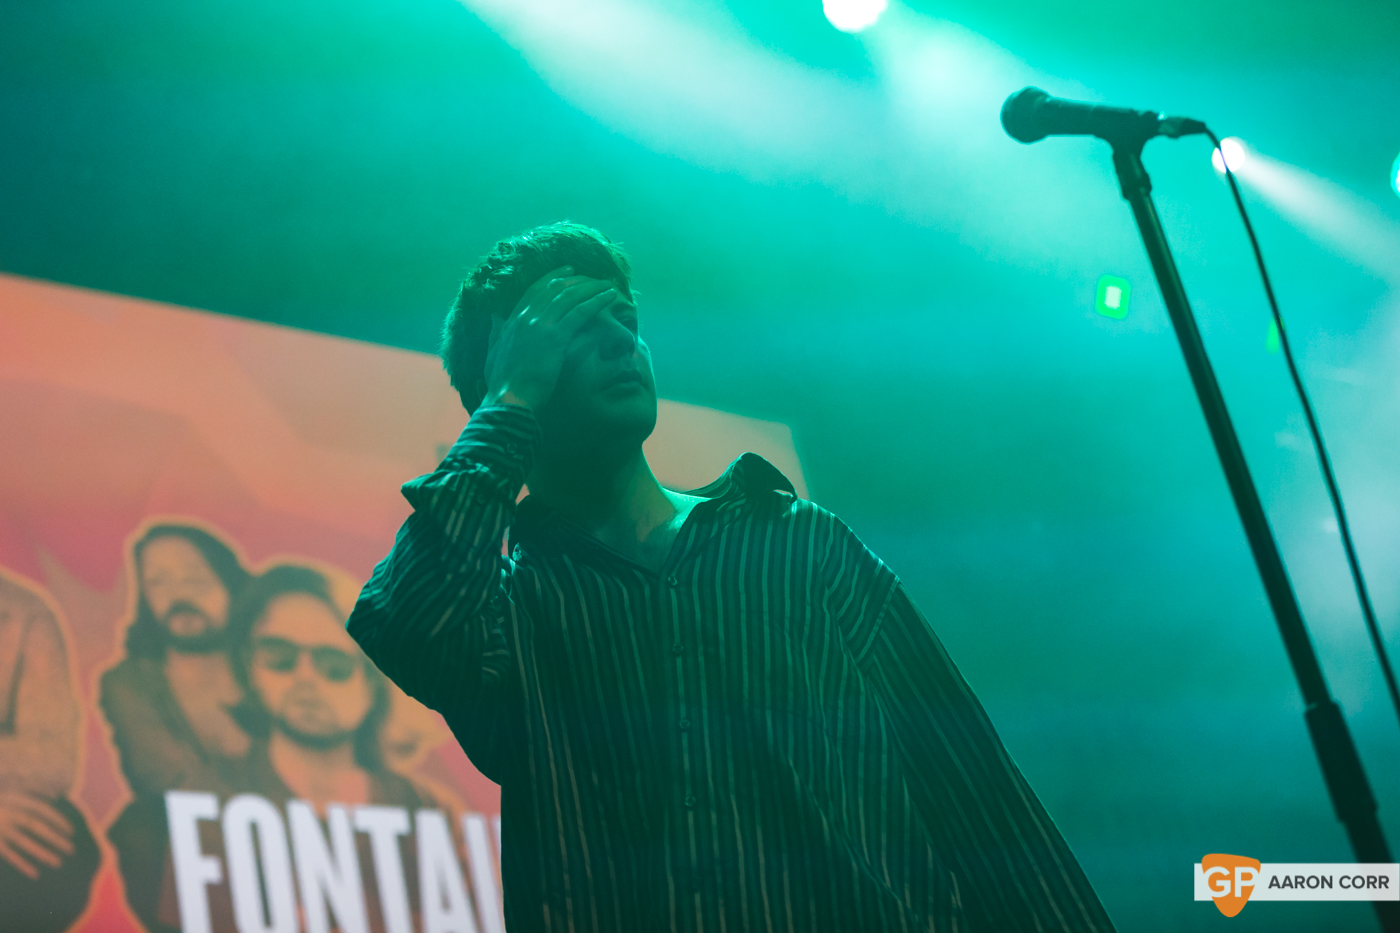 Fontaines DC at Choice Music Prize 2020 in Vicar Street, Dublin on 05-Mar-20 by Aaron Corr-5556